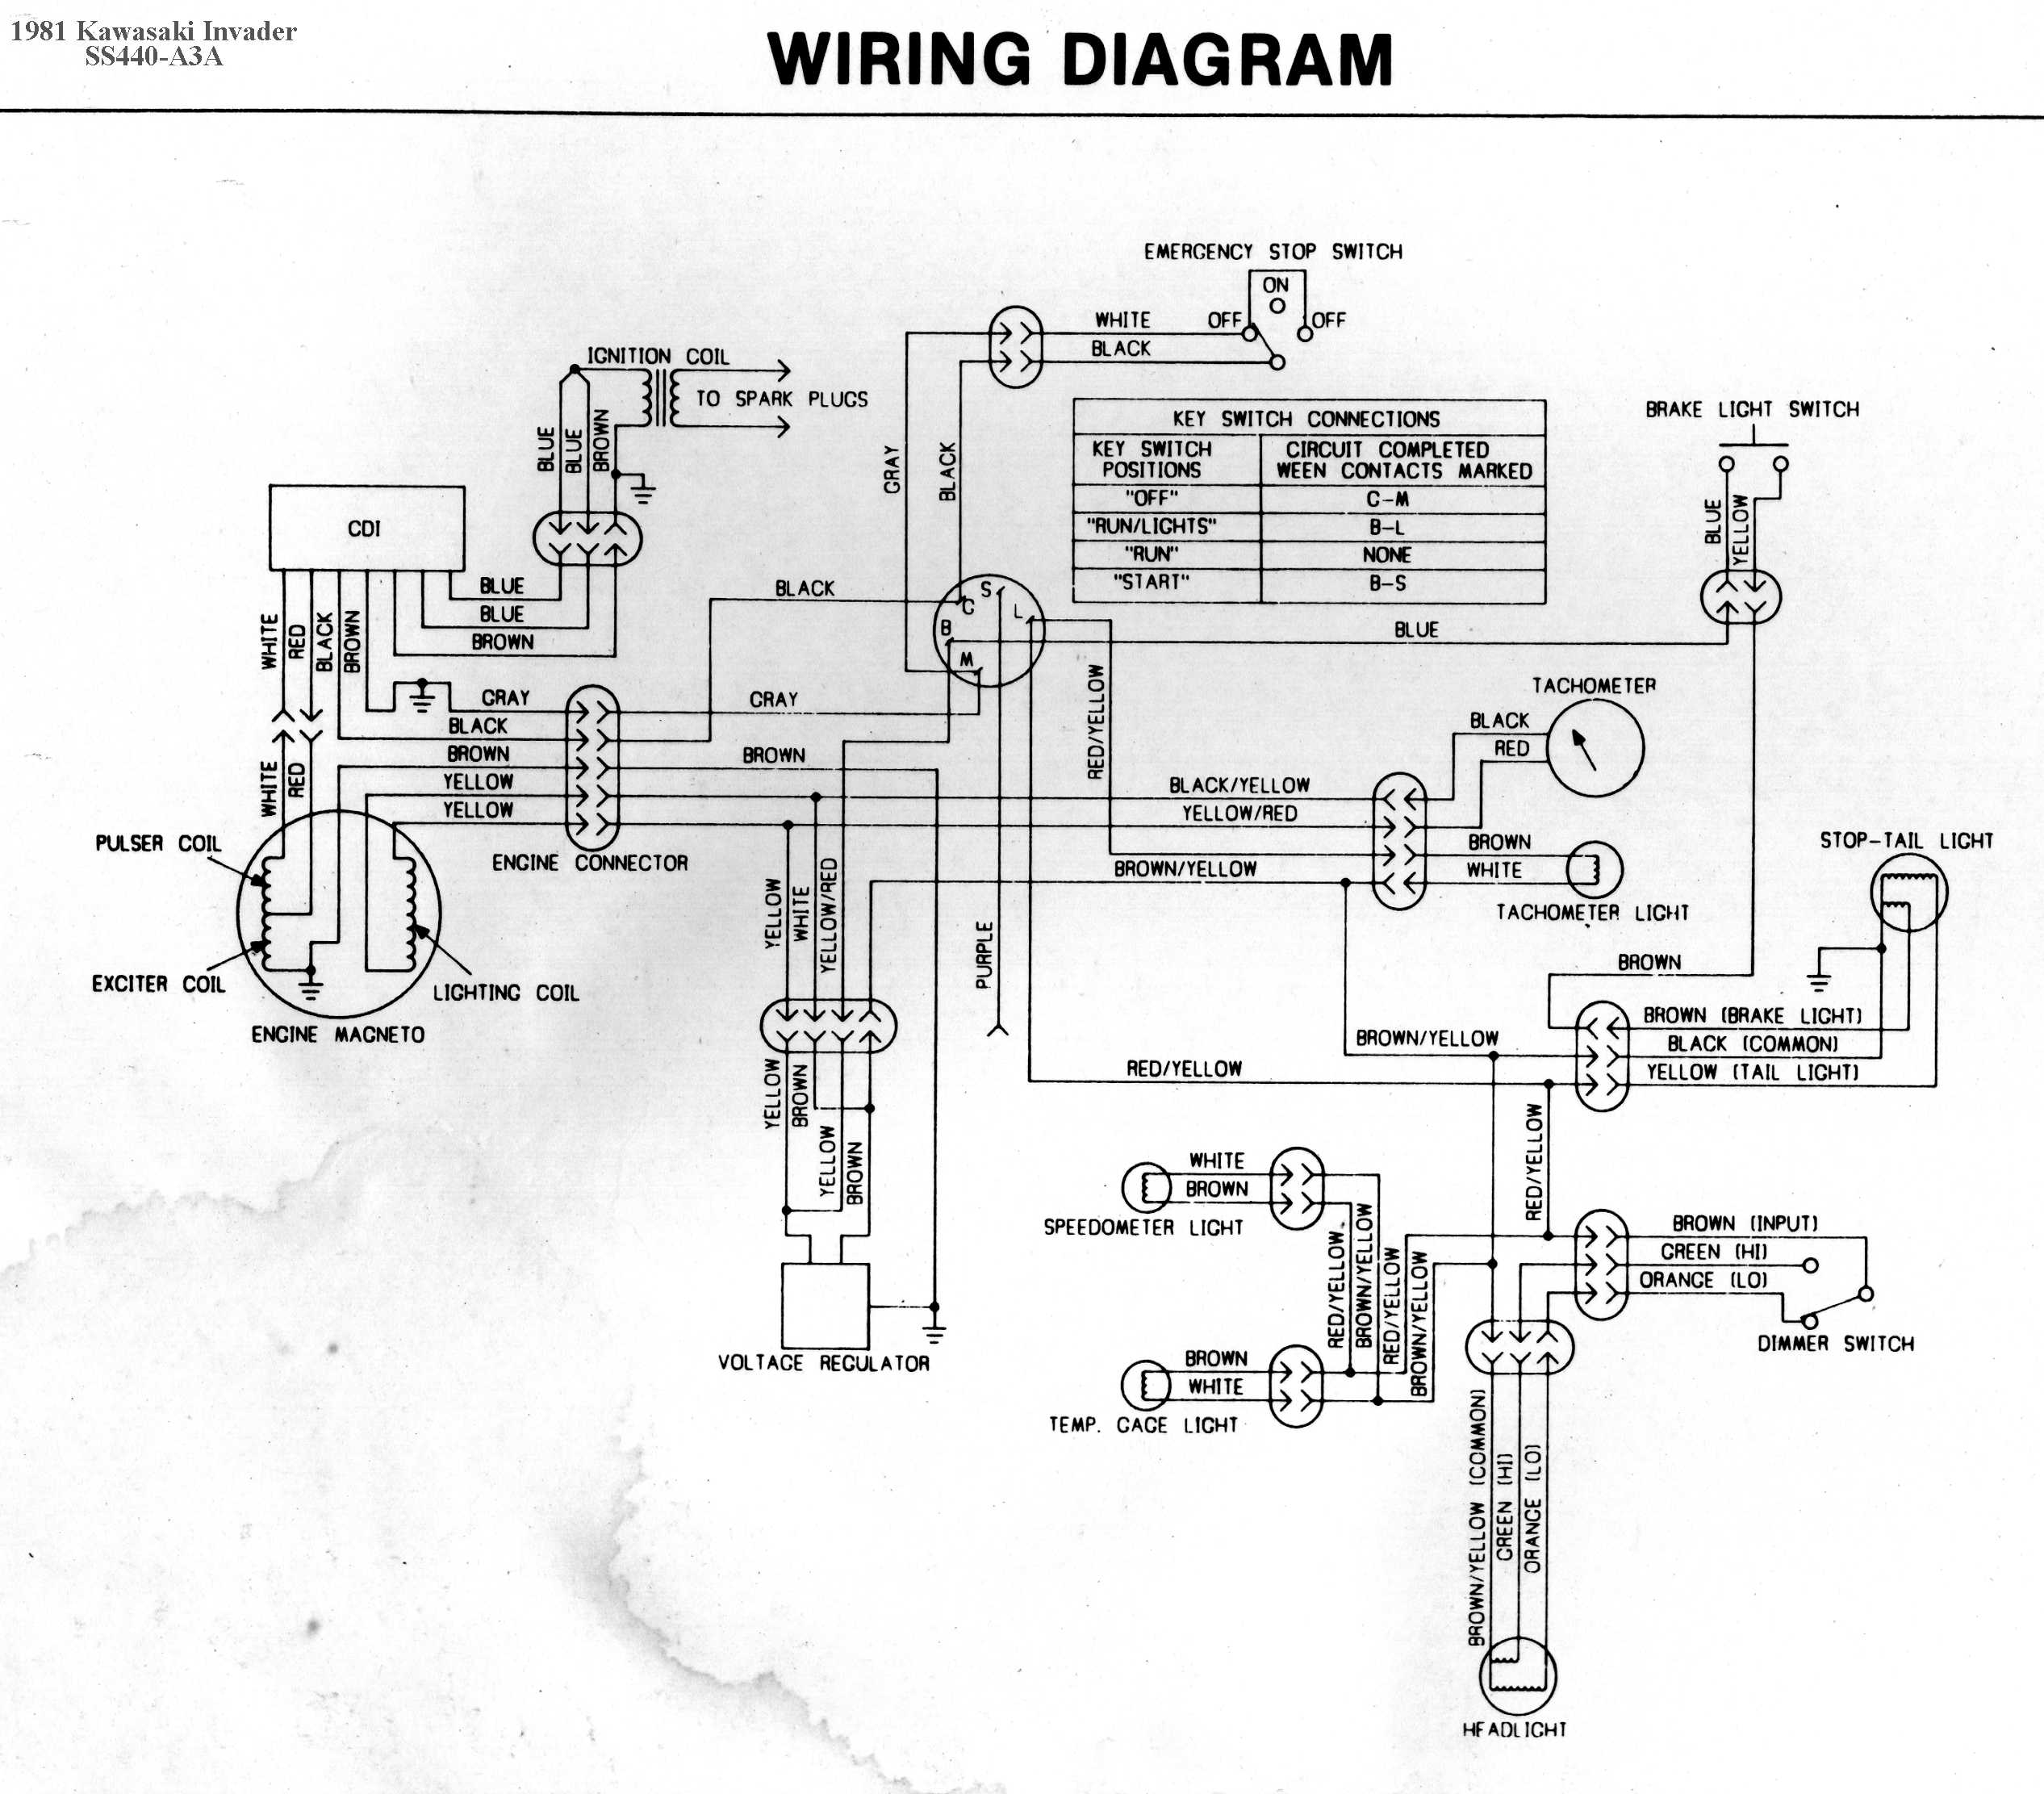 ss440a3a kawasaki invader snowmobile wiring diagrams 1980 kawasaki kz440 wiring diagram at readyjetset.co